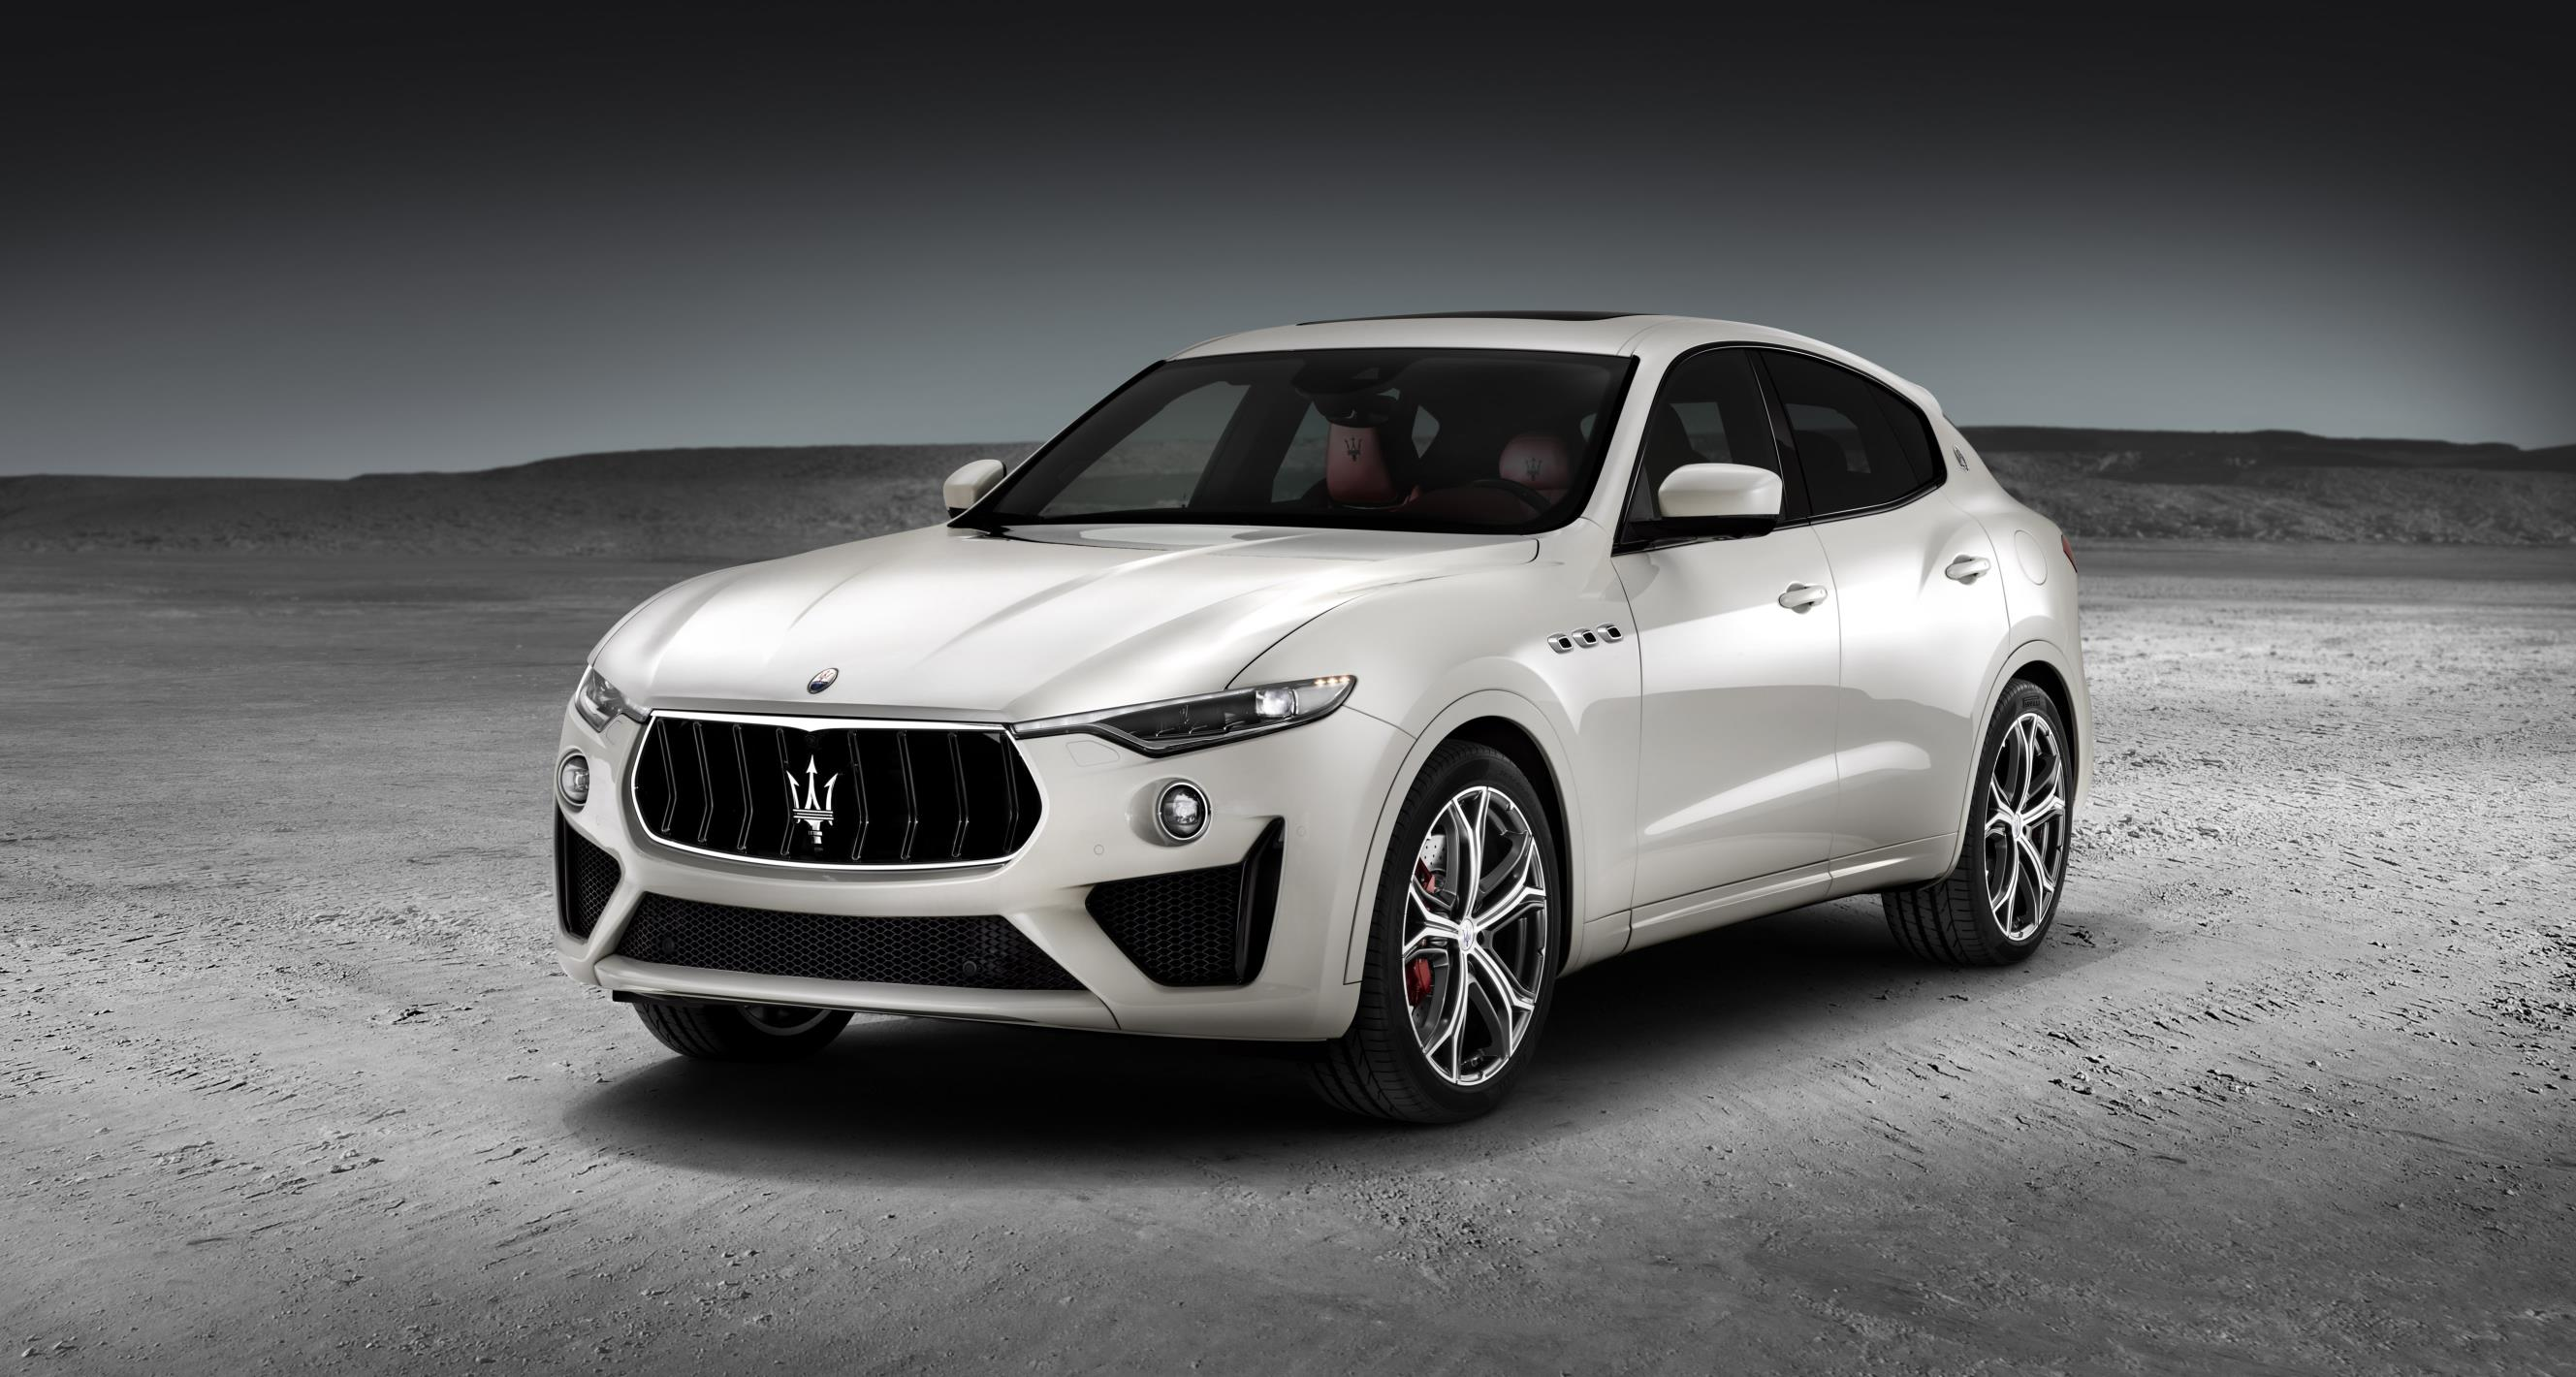 2019 Maserati Levante GTS Launched with 550hp V8